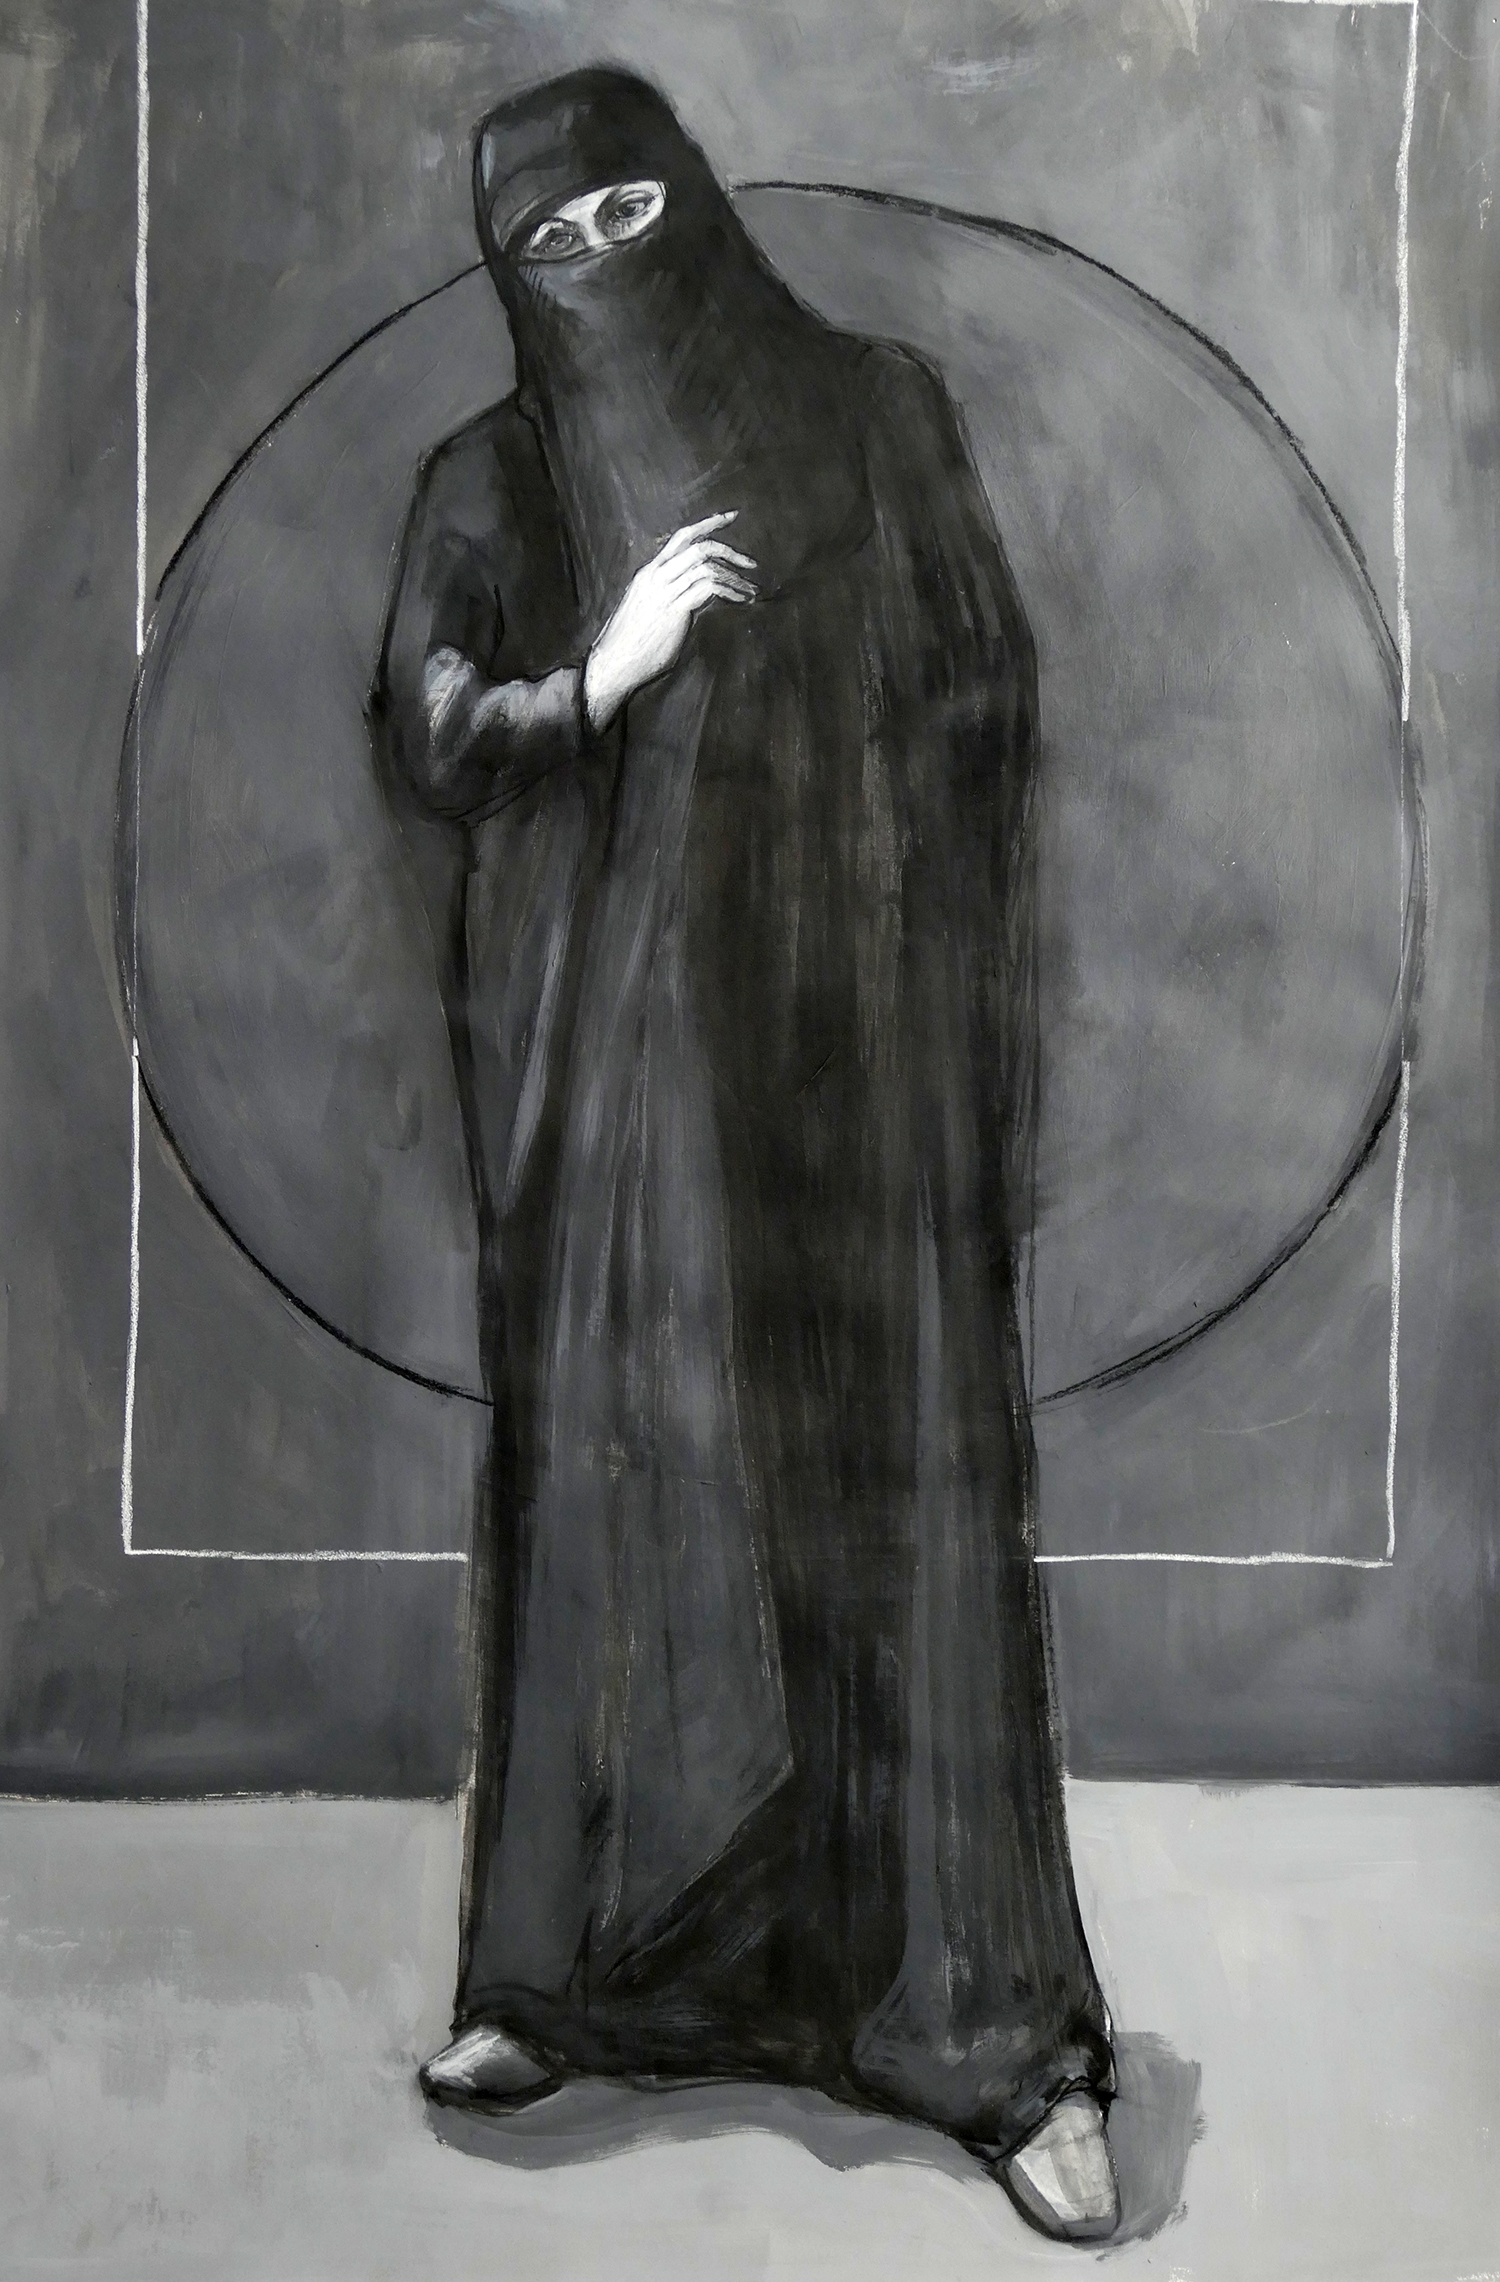 Niqab I,  charcoal and acrylic on paper, 22 x 30 in.